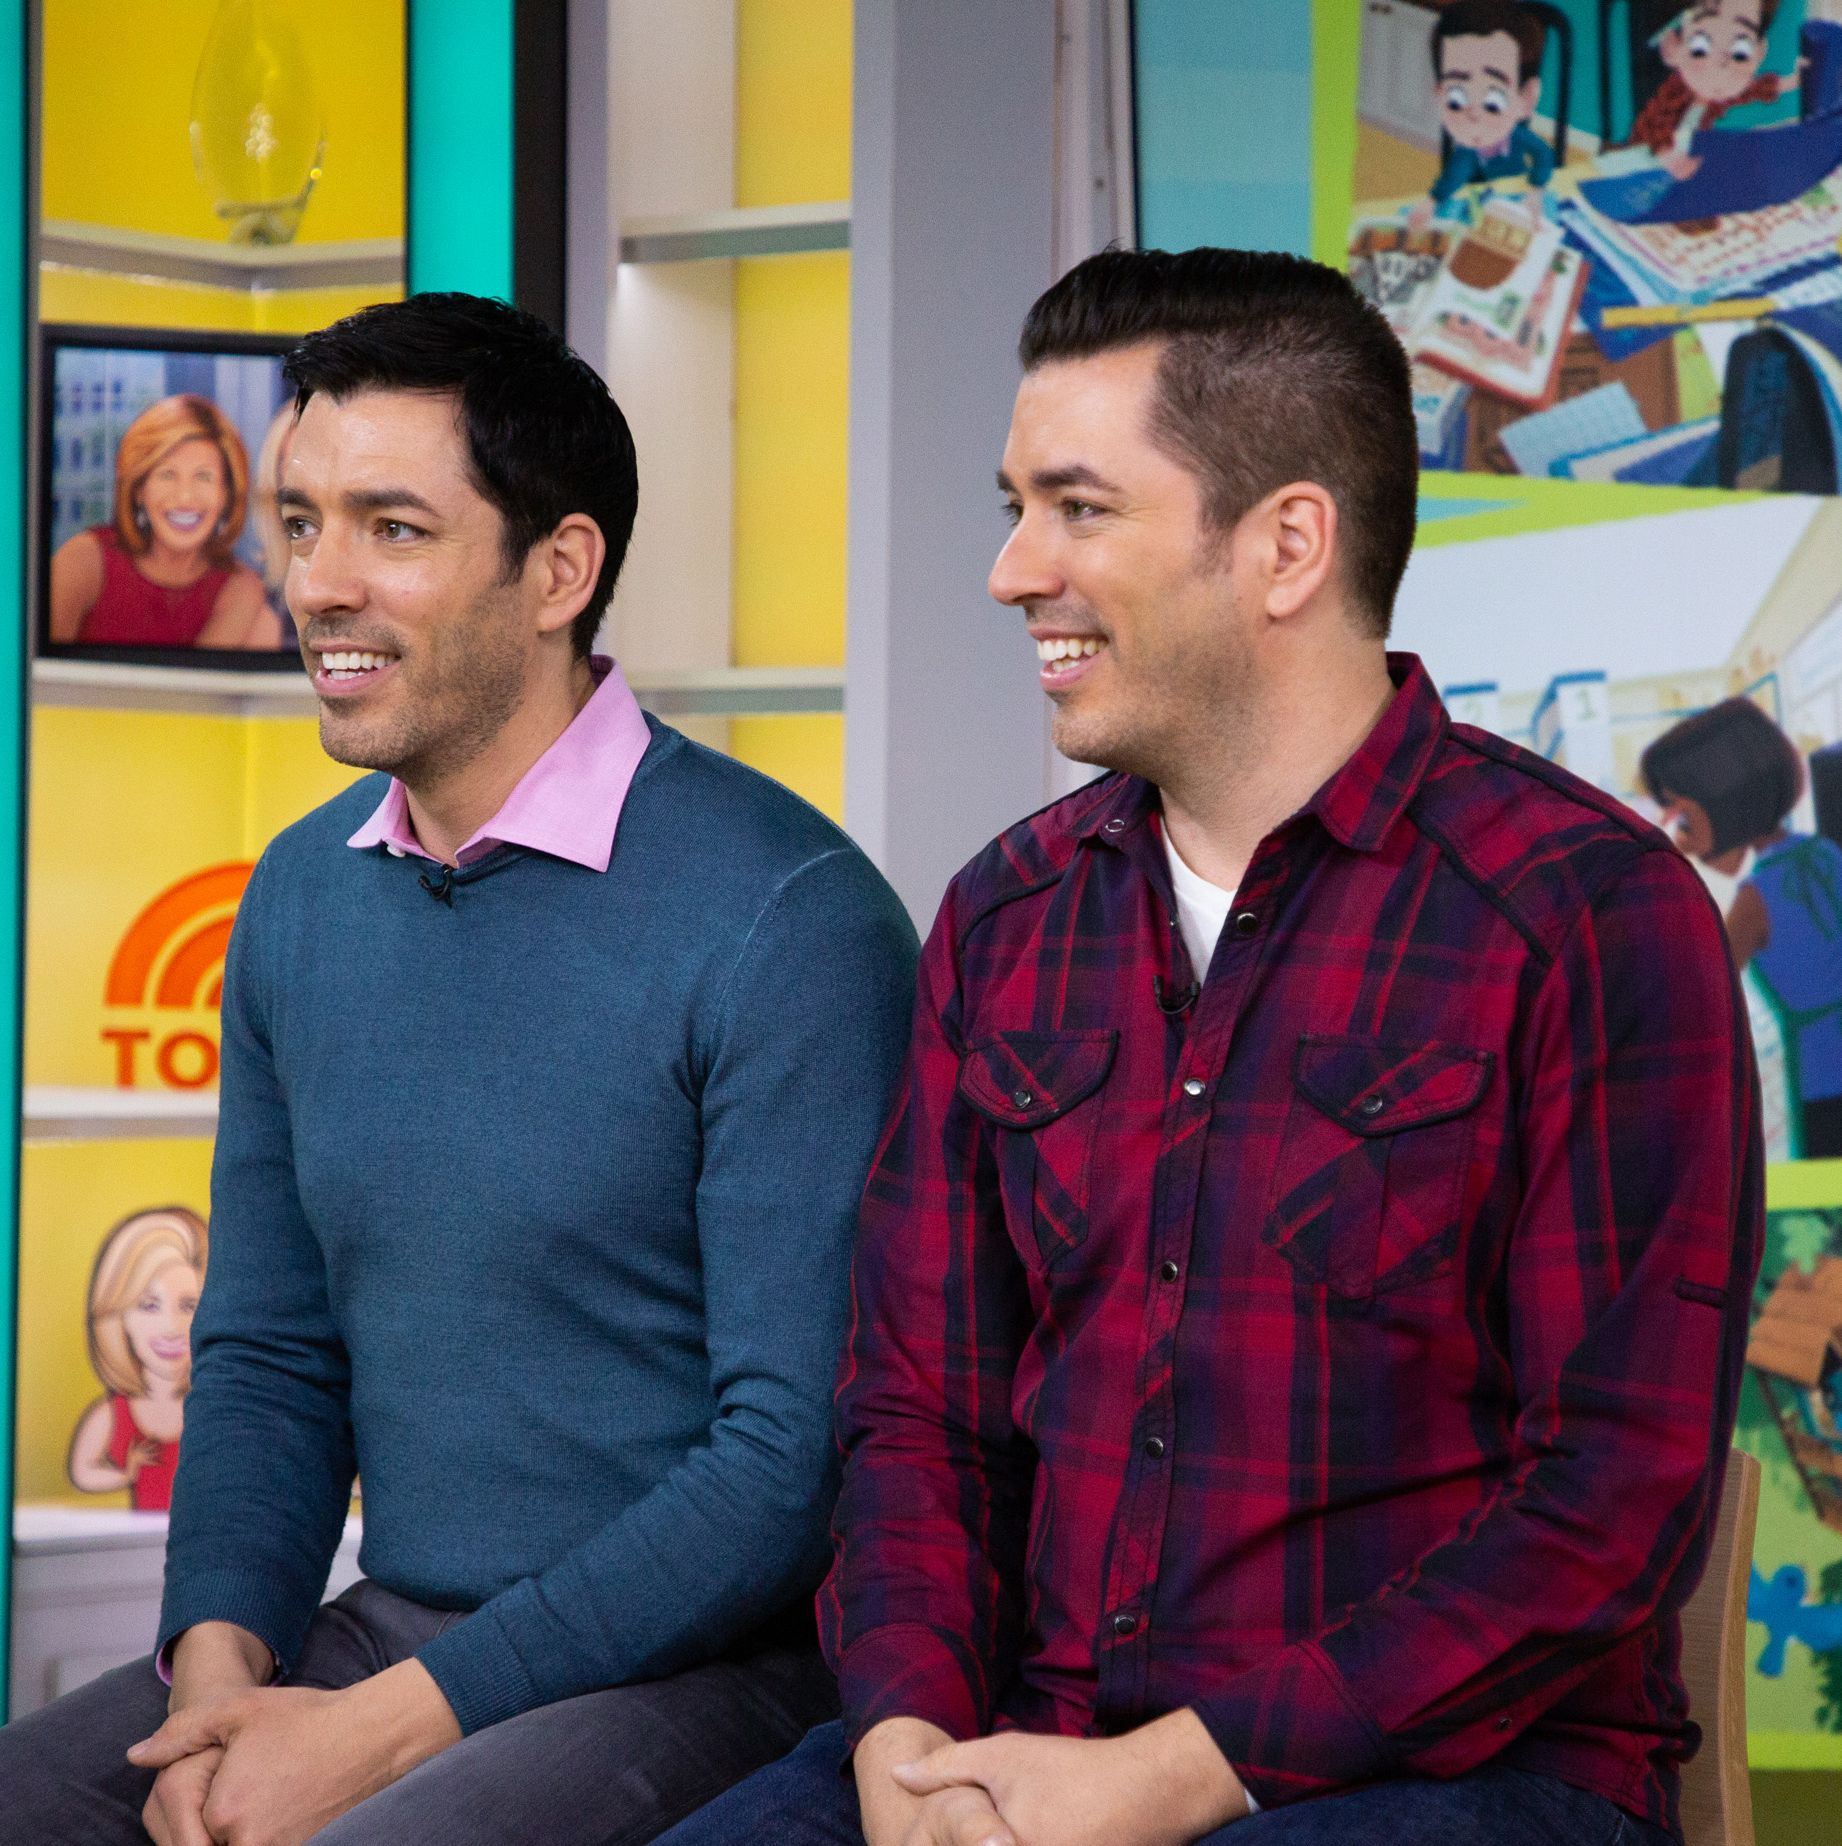 21 Best Crafts & DIYs For Kids This Holiday Season, According To The Property Brothers